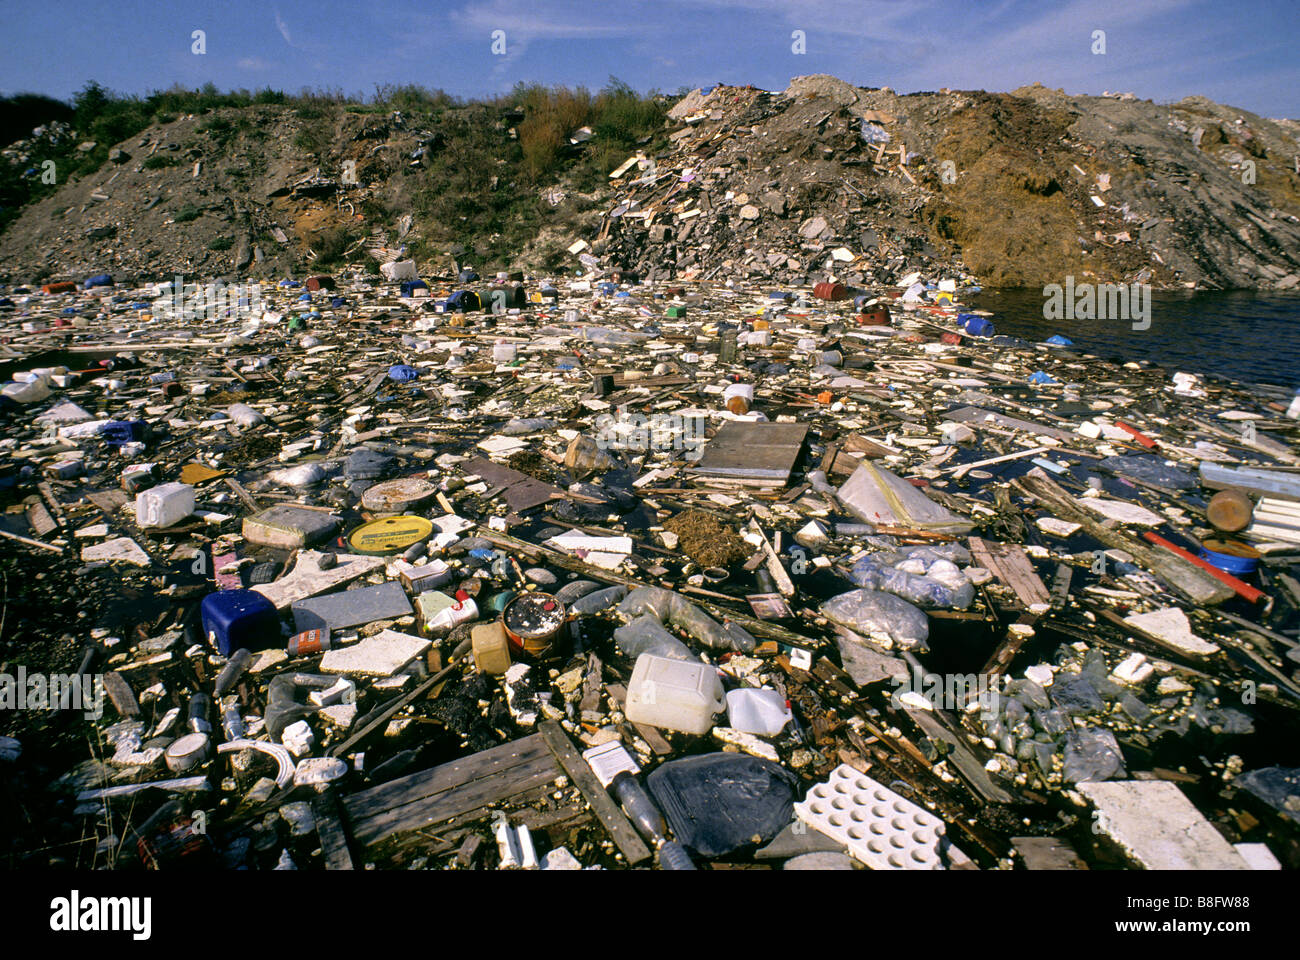 Landfill rubbish dump tip - Stock Image